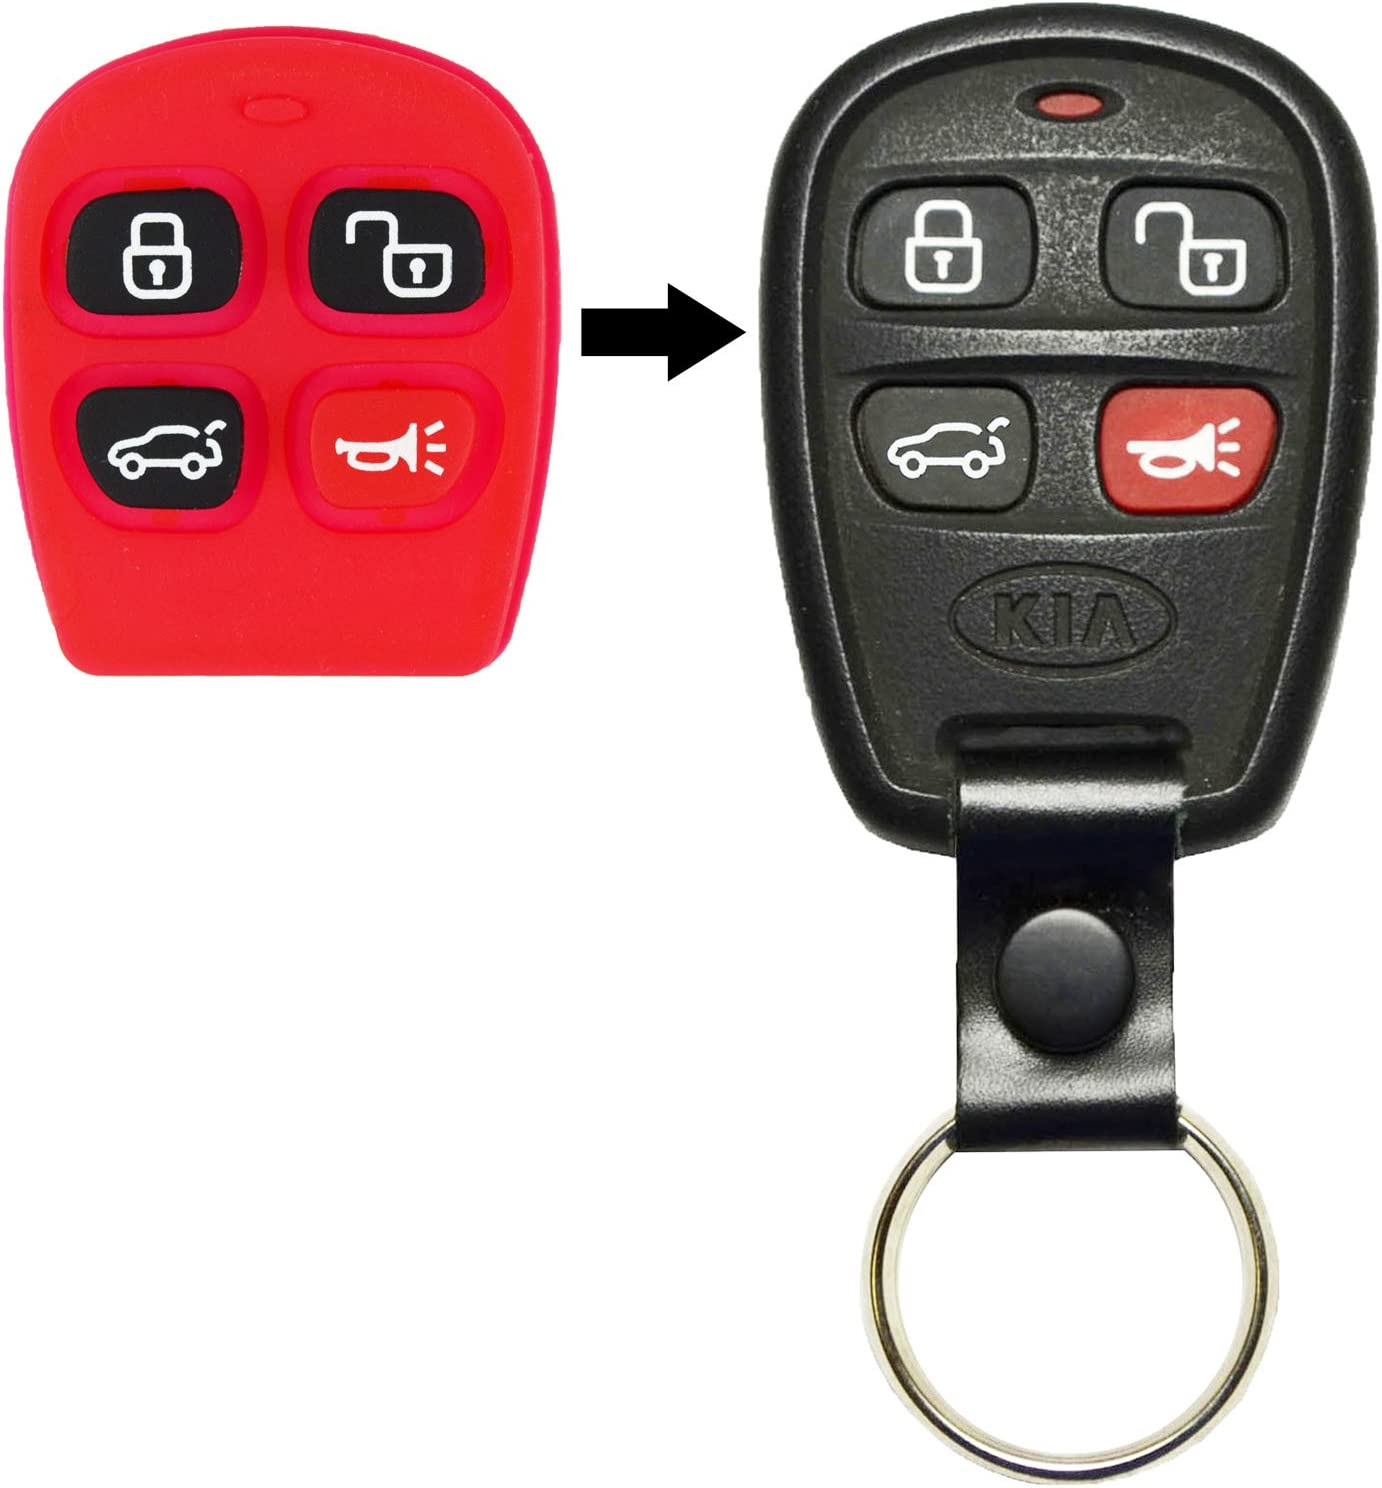 qualitykeylessplus Two Replacement 4 Button Hatch Rubber Pads for Kia Remote Key Fob with Free KEYTAG